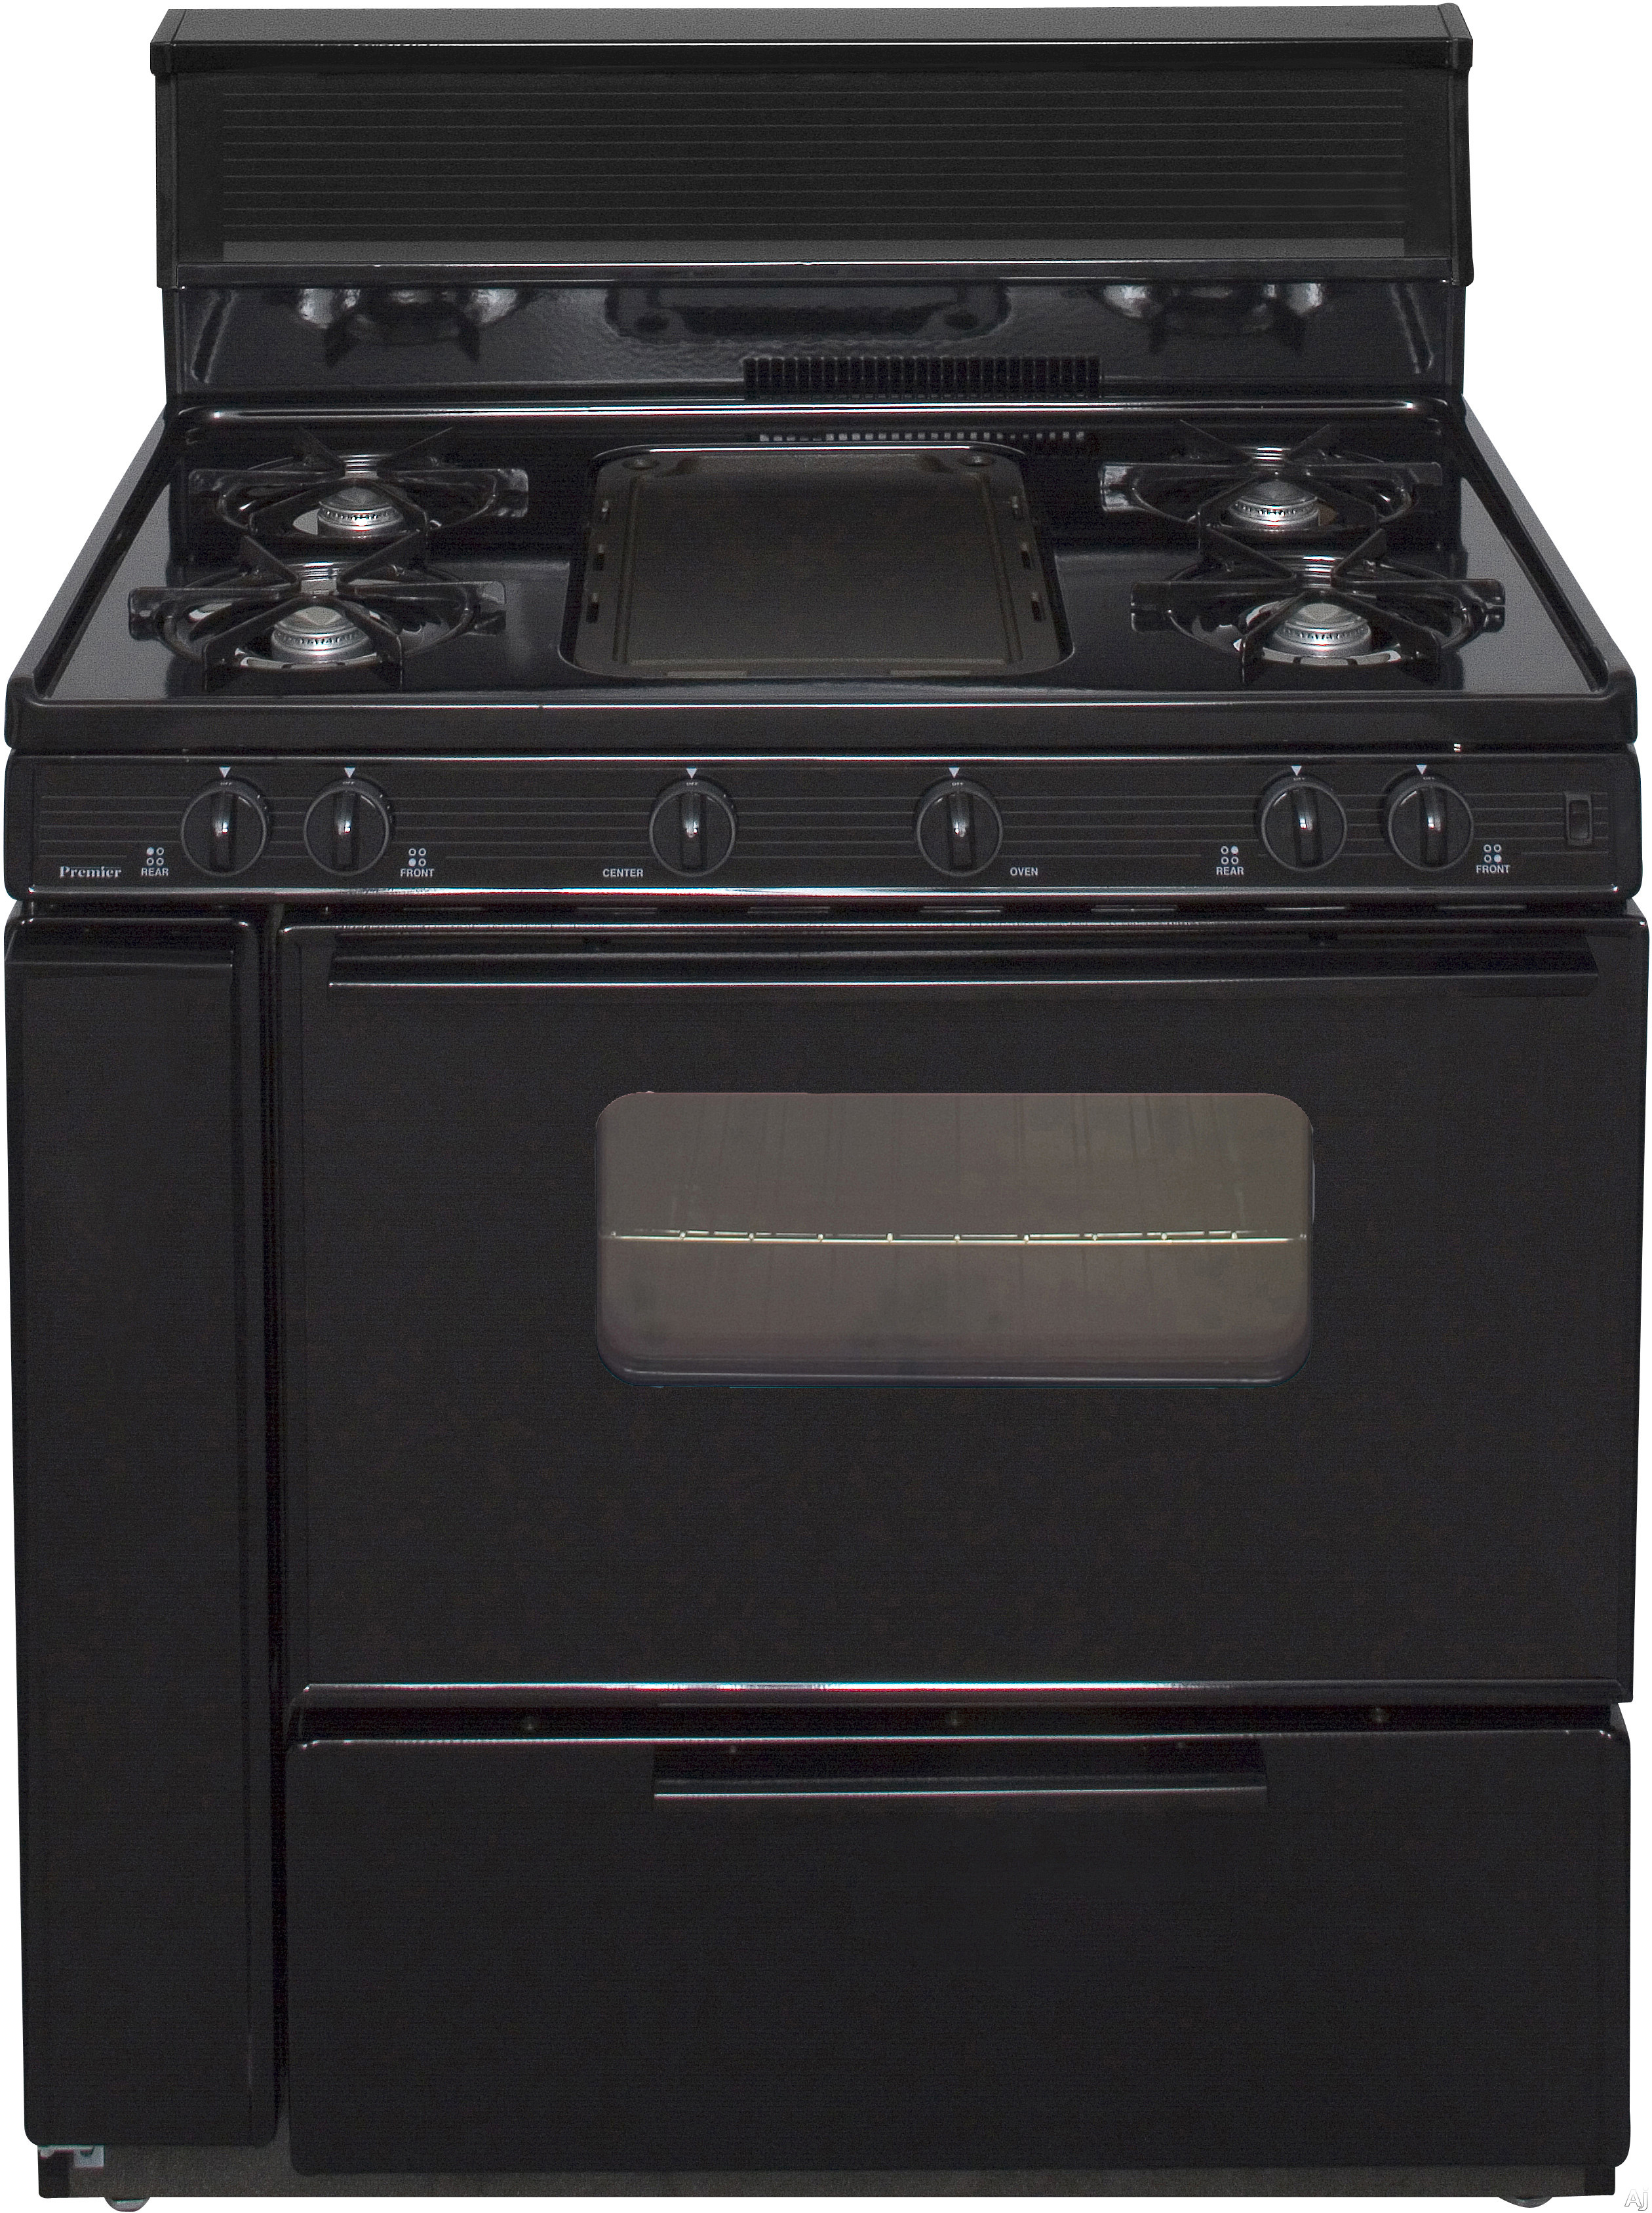 Premier blk5s9xp 36 freestanding gas range with 5 burners for 17000 btu window air conditioner